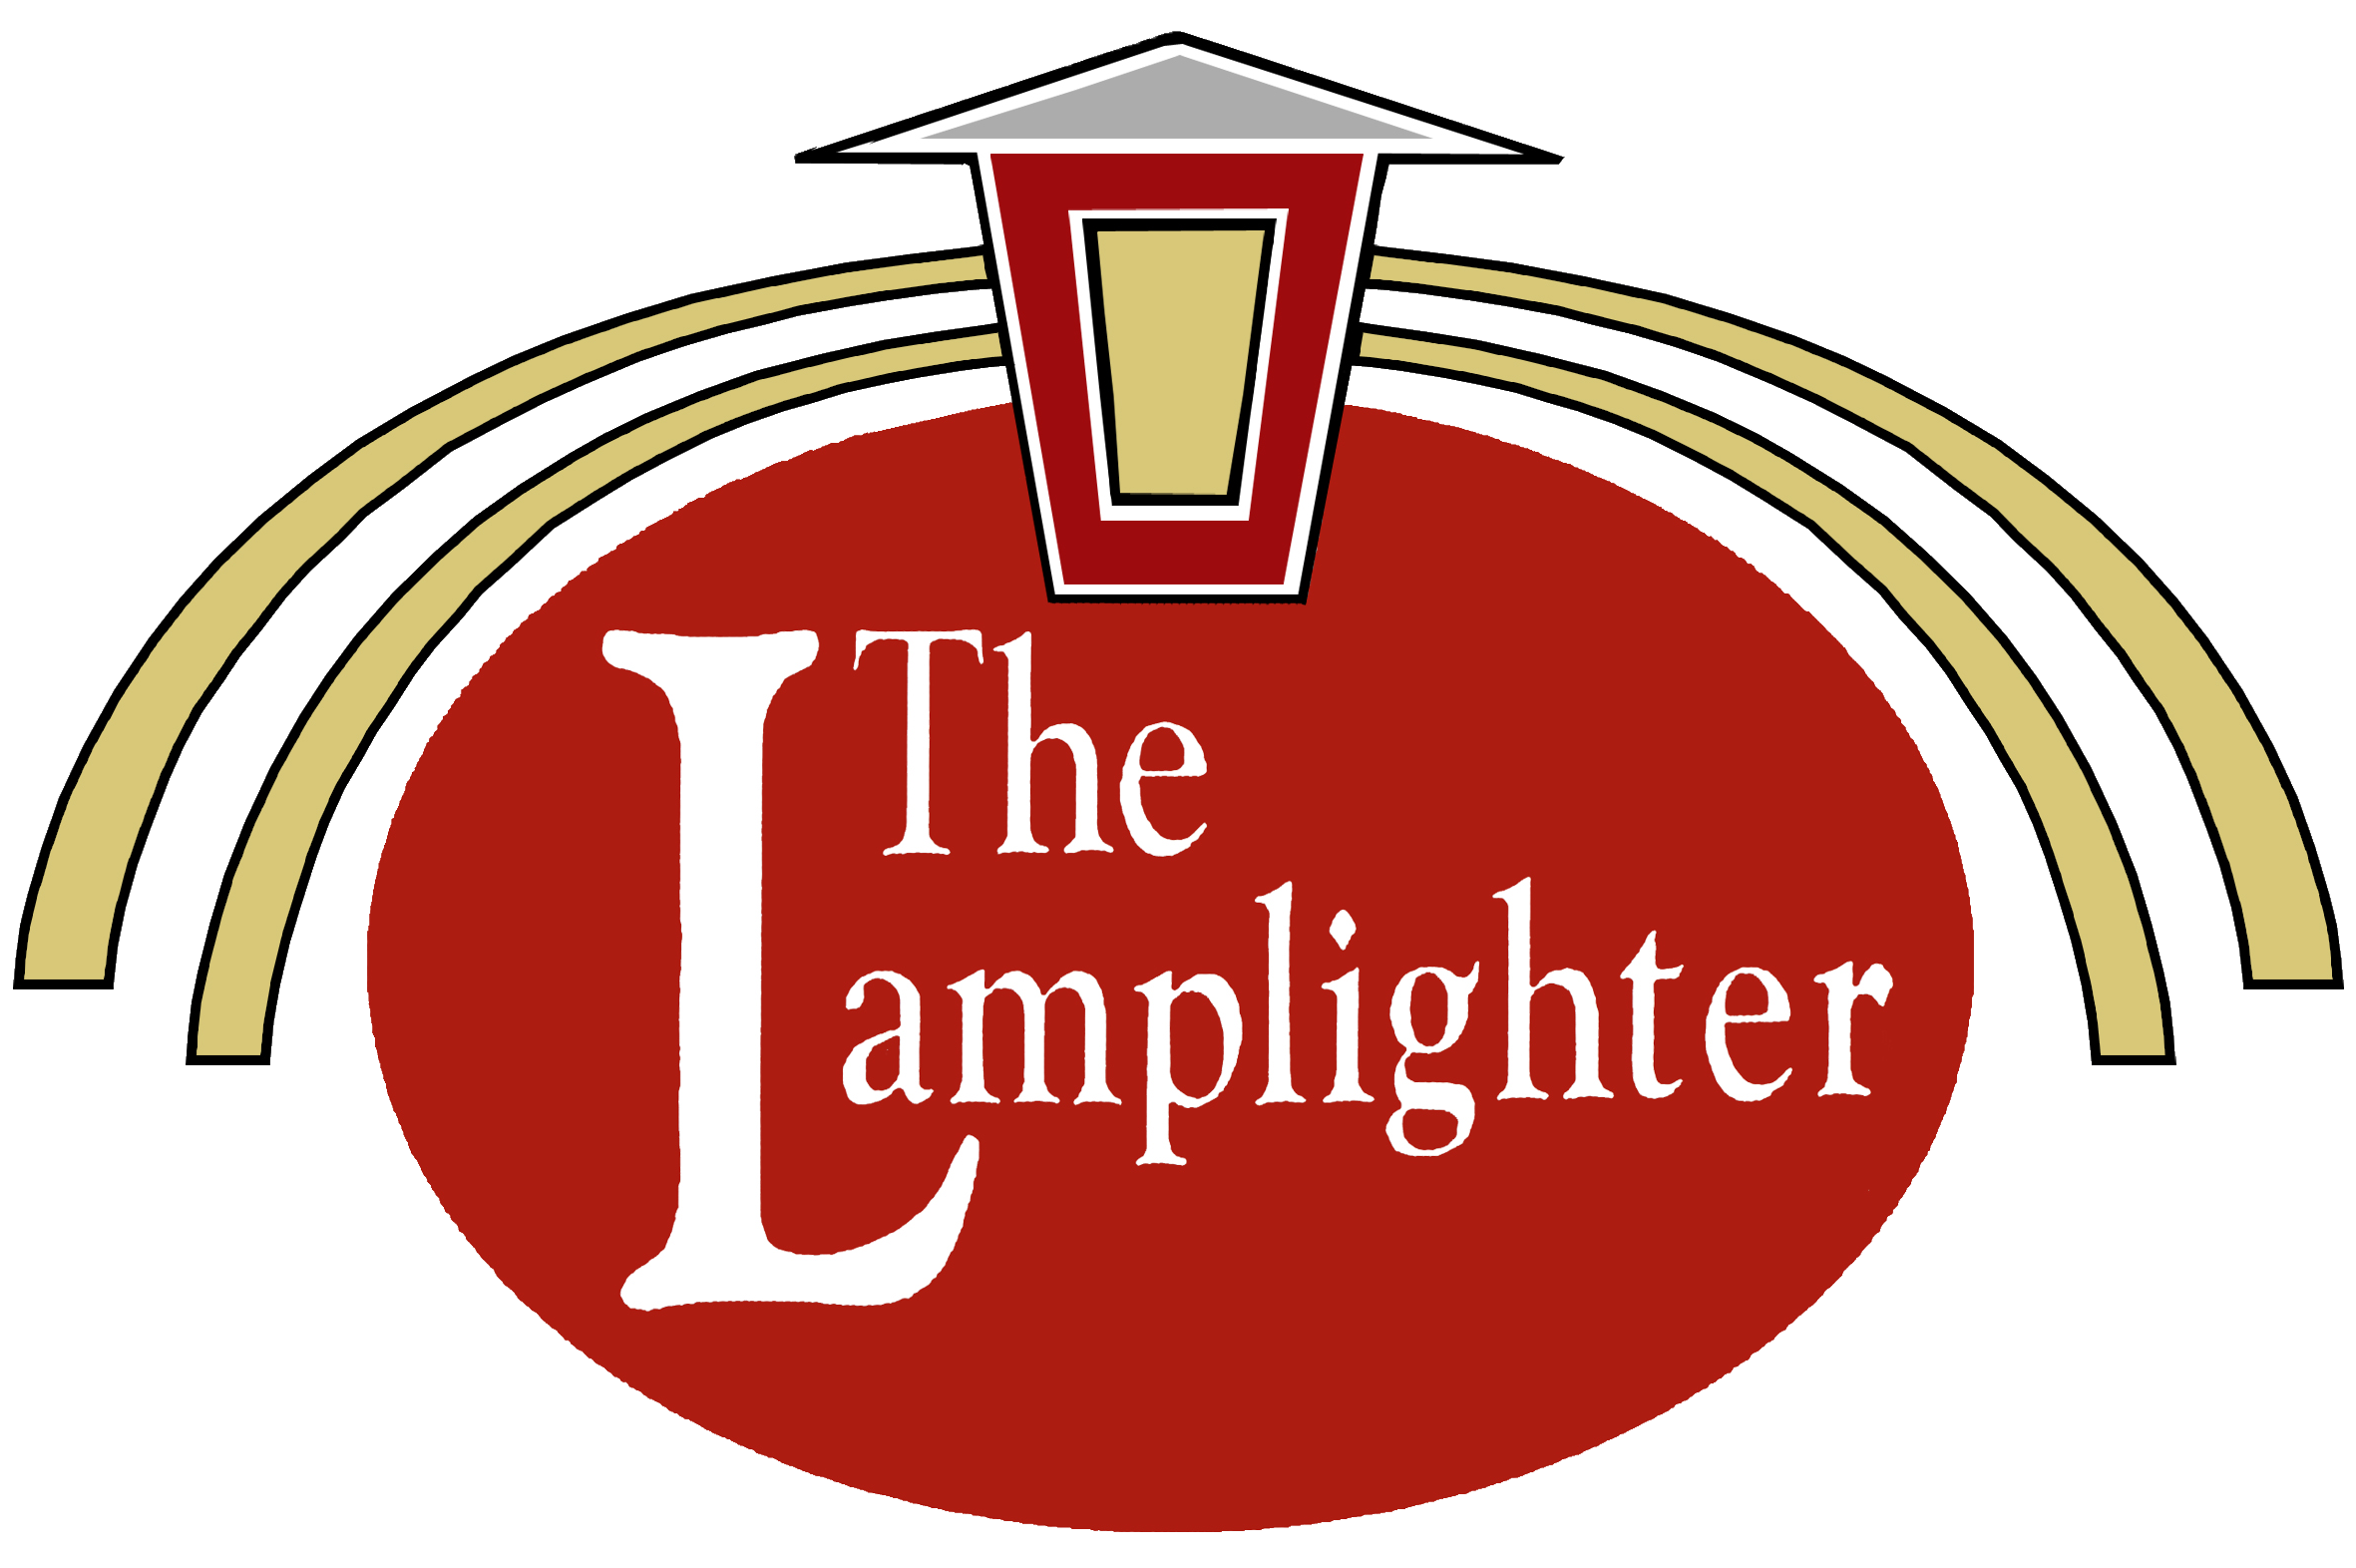 The Lamplighter Restaurant